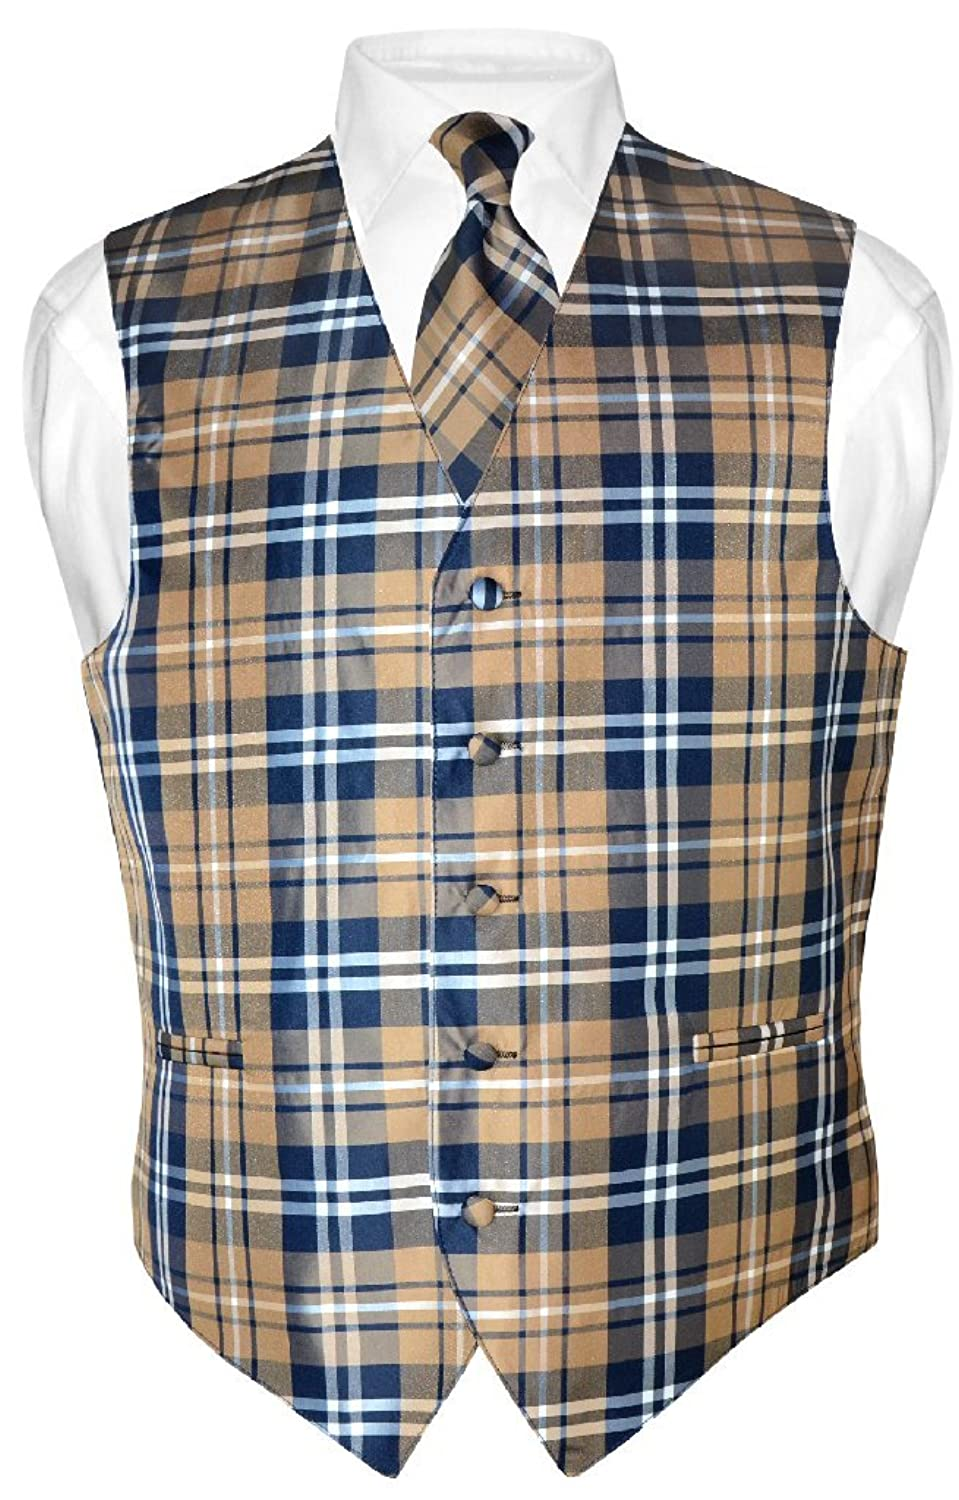 1920s Style Mens Vests Mens Plaid Design Dress Vest & NeckTie Navy Brown White Neck Tie Set $26.99 AT vintagedancer.com